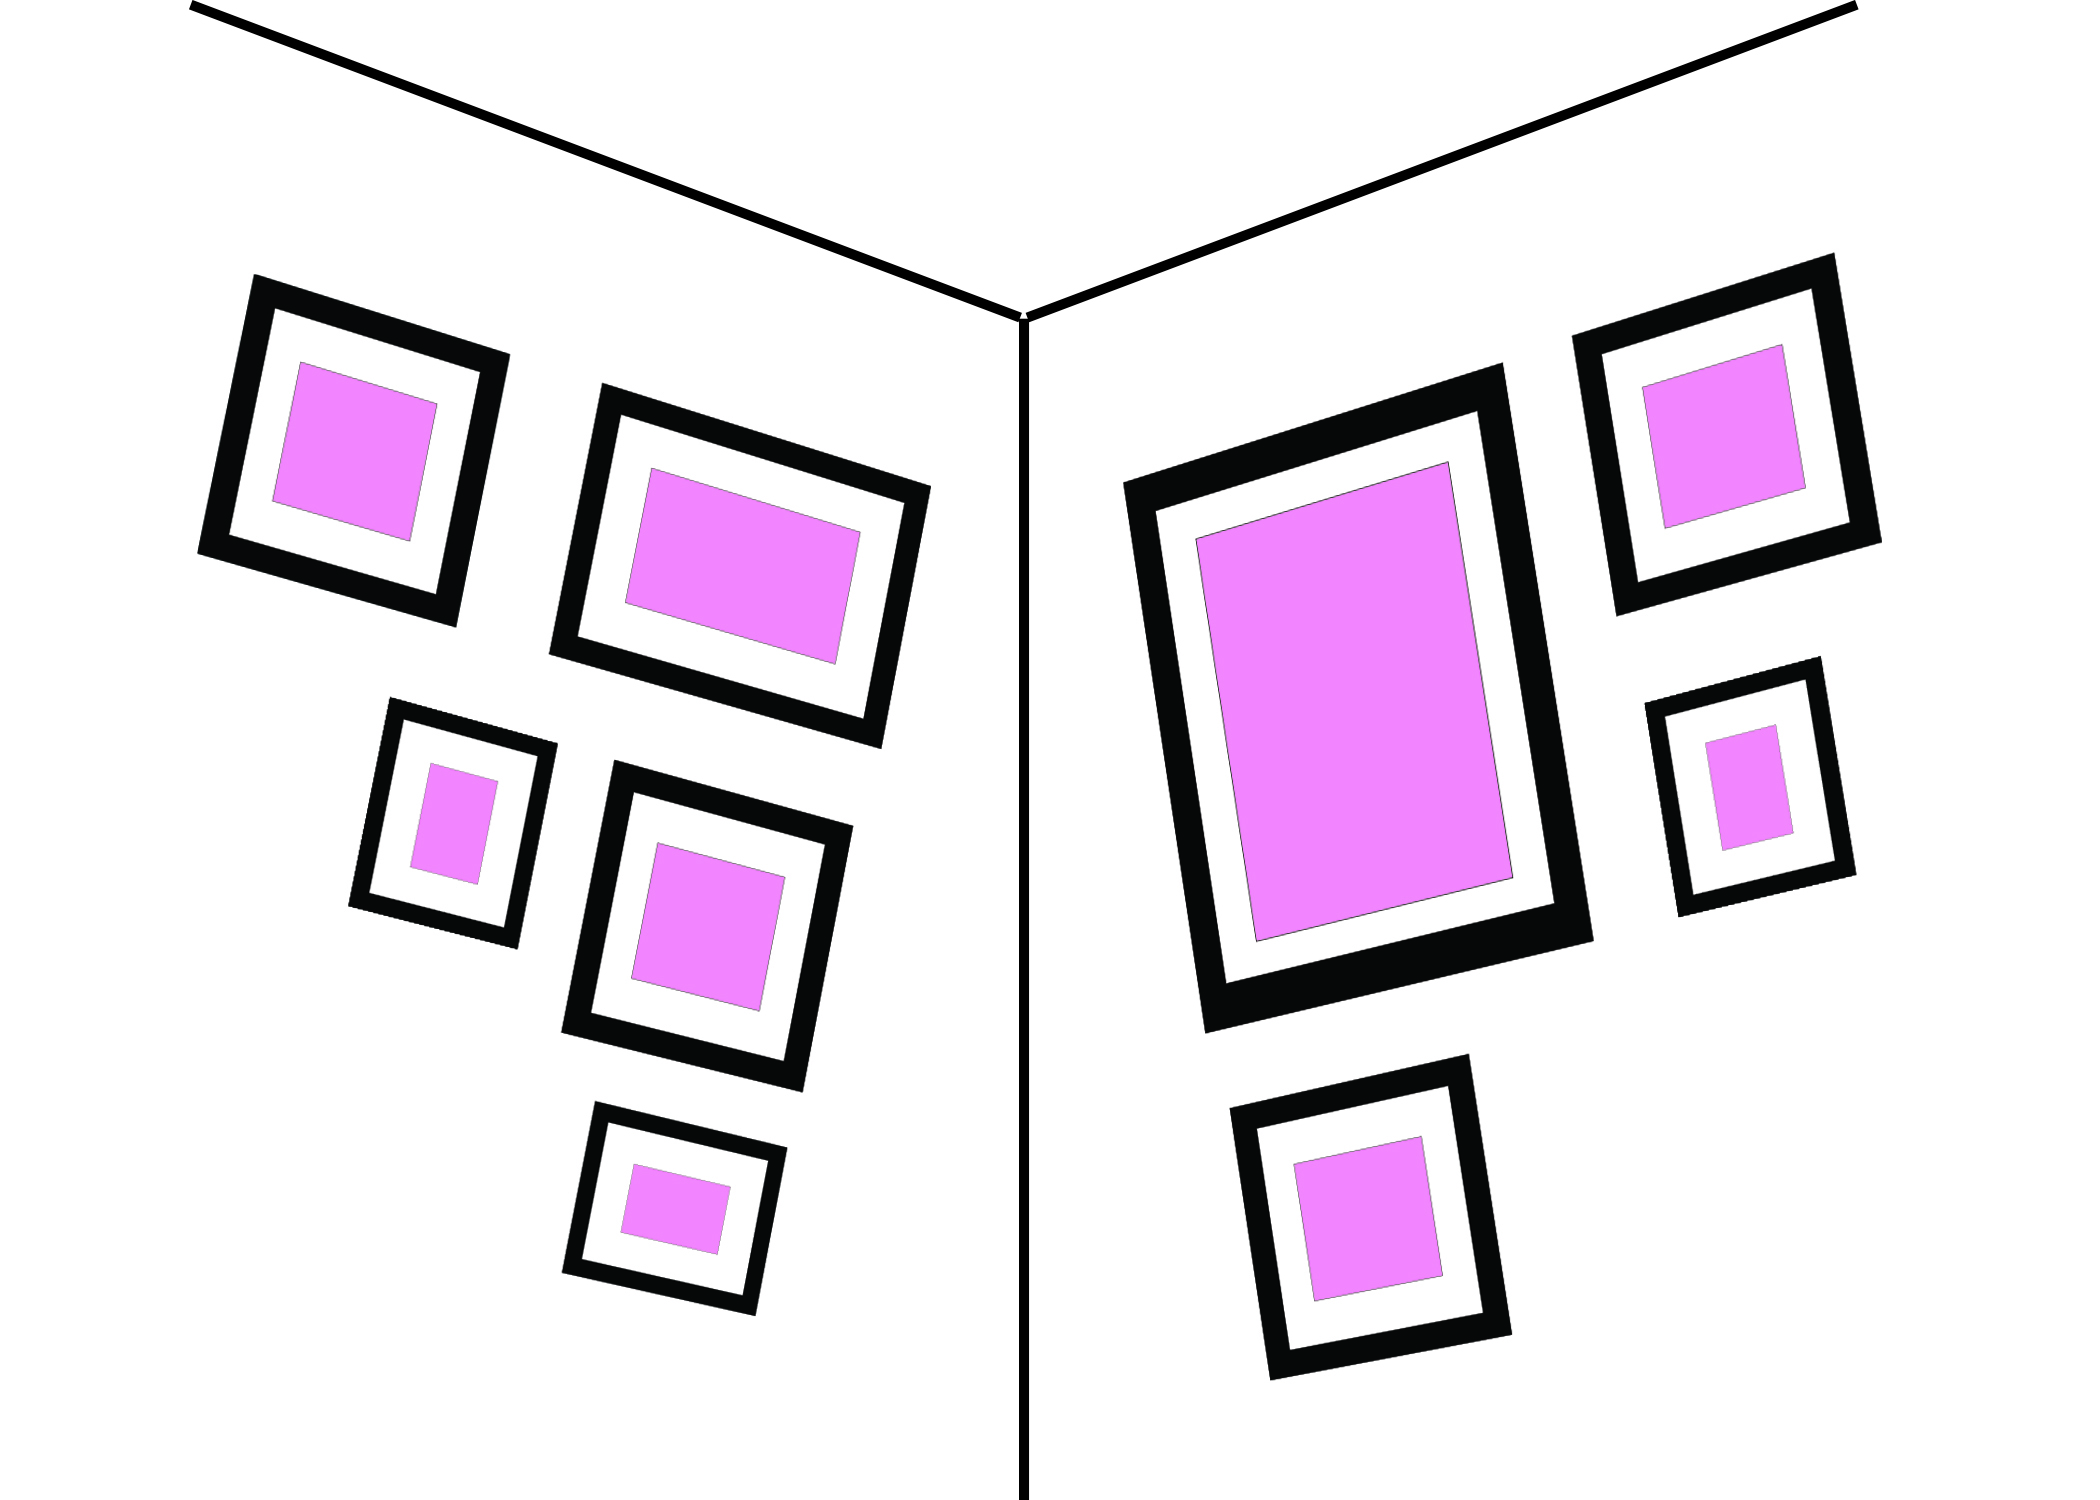 IN THE CORNER - To make this work, keep the two sizes the same distance from the corner. This style is quirky enough that you can use a mix of different style frames and sizes.